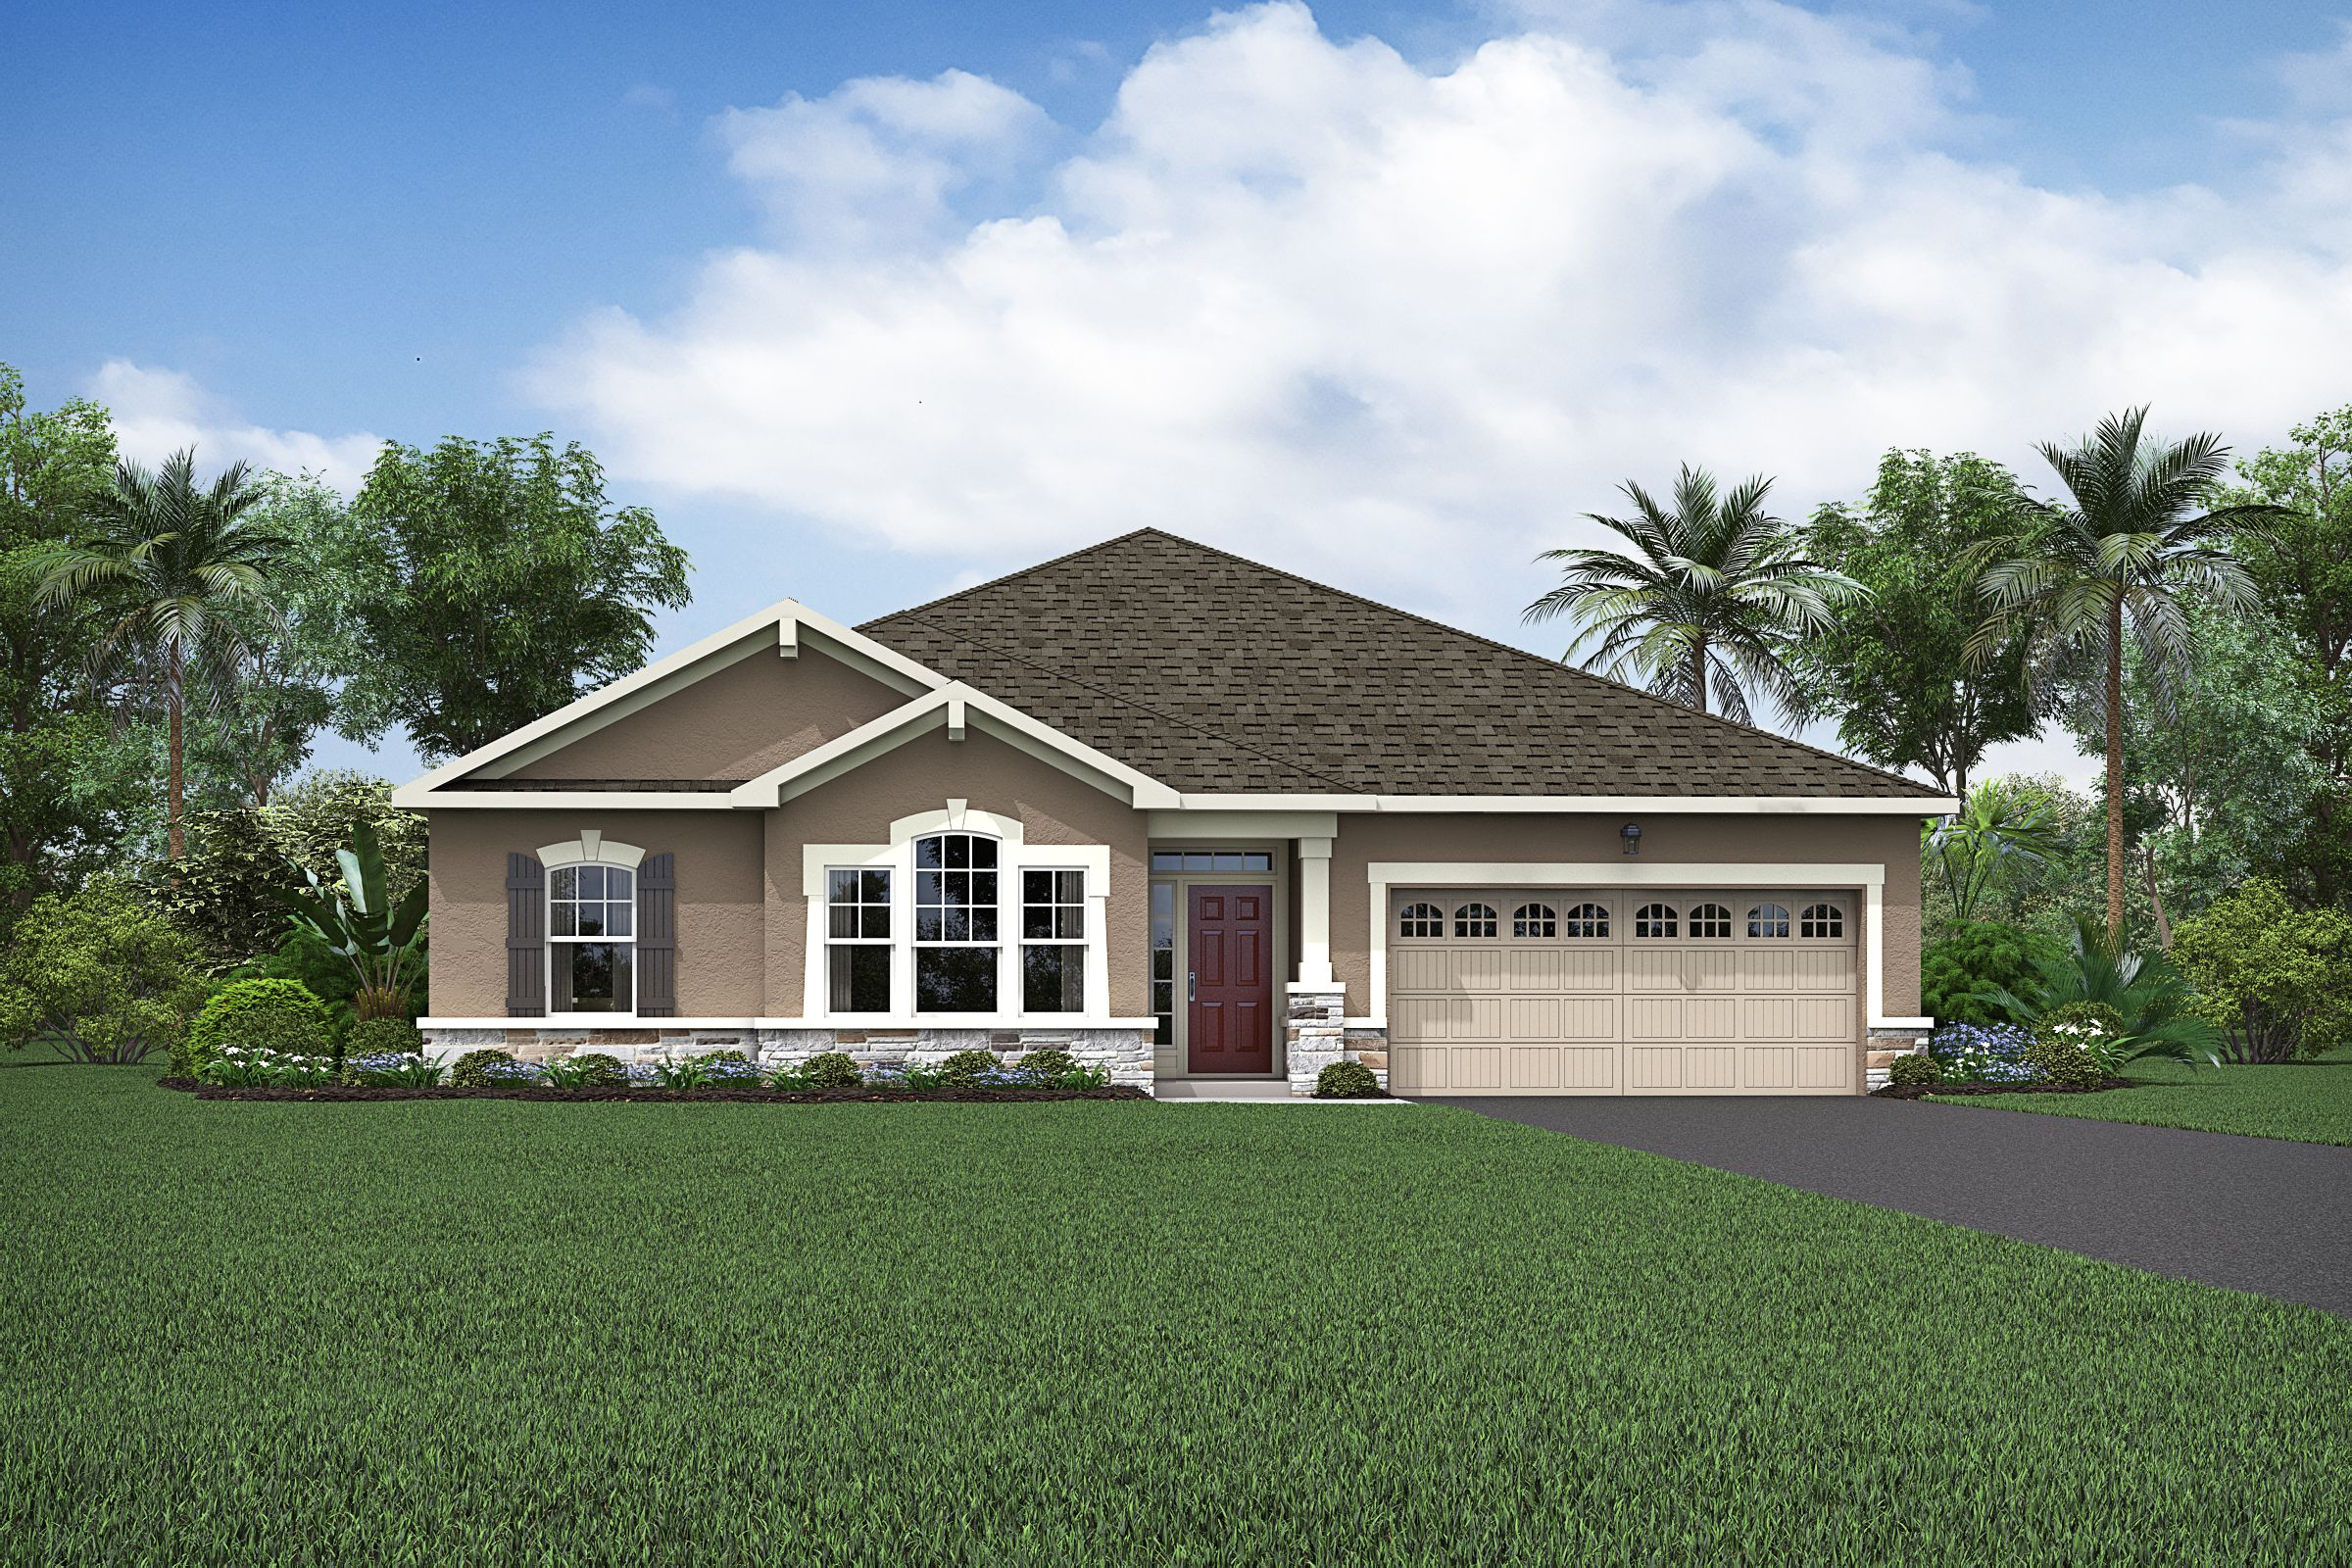 deltona senior singles You can find single-family homes for rent of all sizes nestled in the woods all through the deltona lakes region, many with water access lakes sit everywhere in deltona lakes, some of them quite large and ideal for boating and fishing.